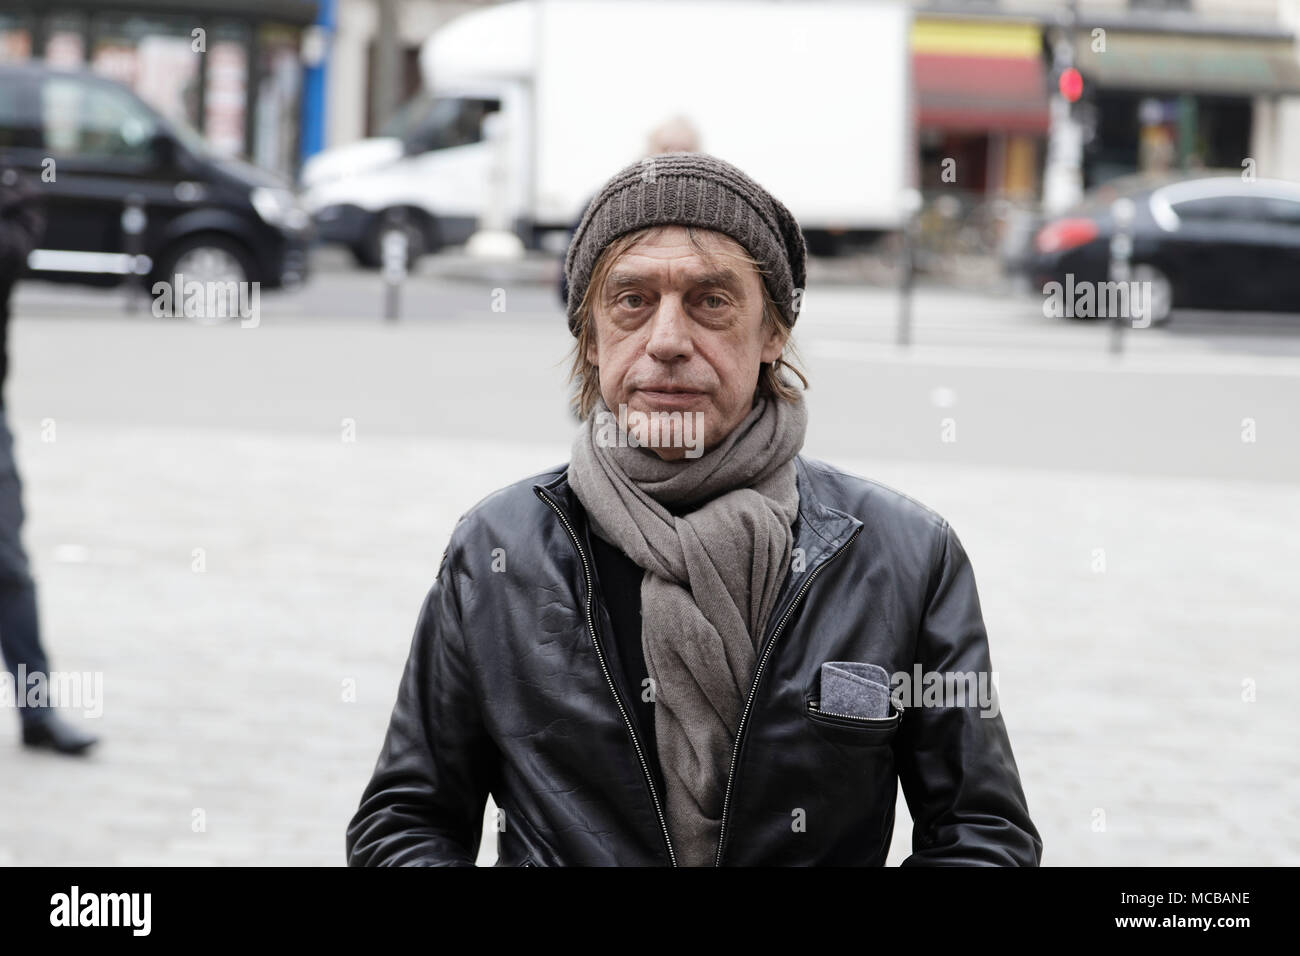 Paris, France. 12th Apr, 2018. Jean-Louis Aubert at the Jacques Higelin funeral at the Cirque d'Hiver on April 12, 2018 in Paris, France. - Stock Image